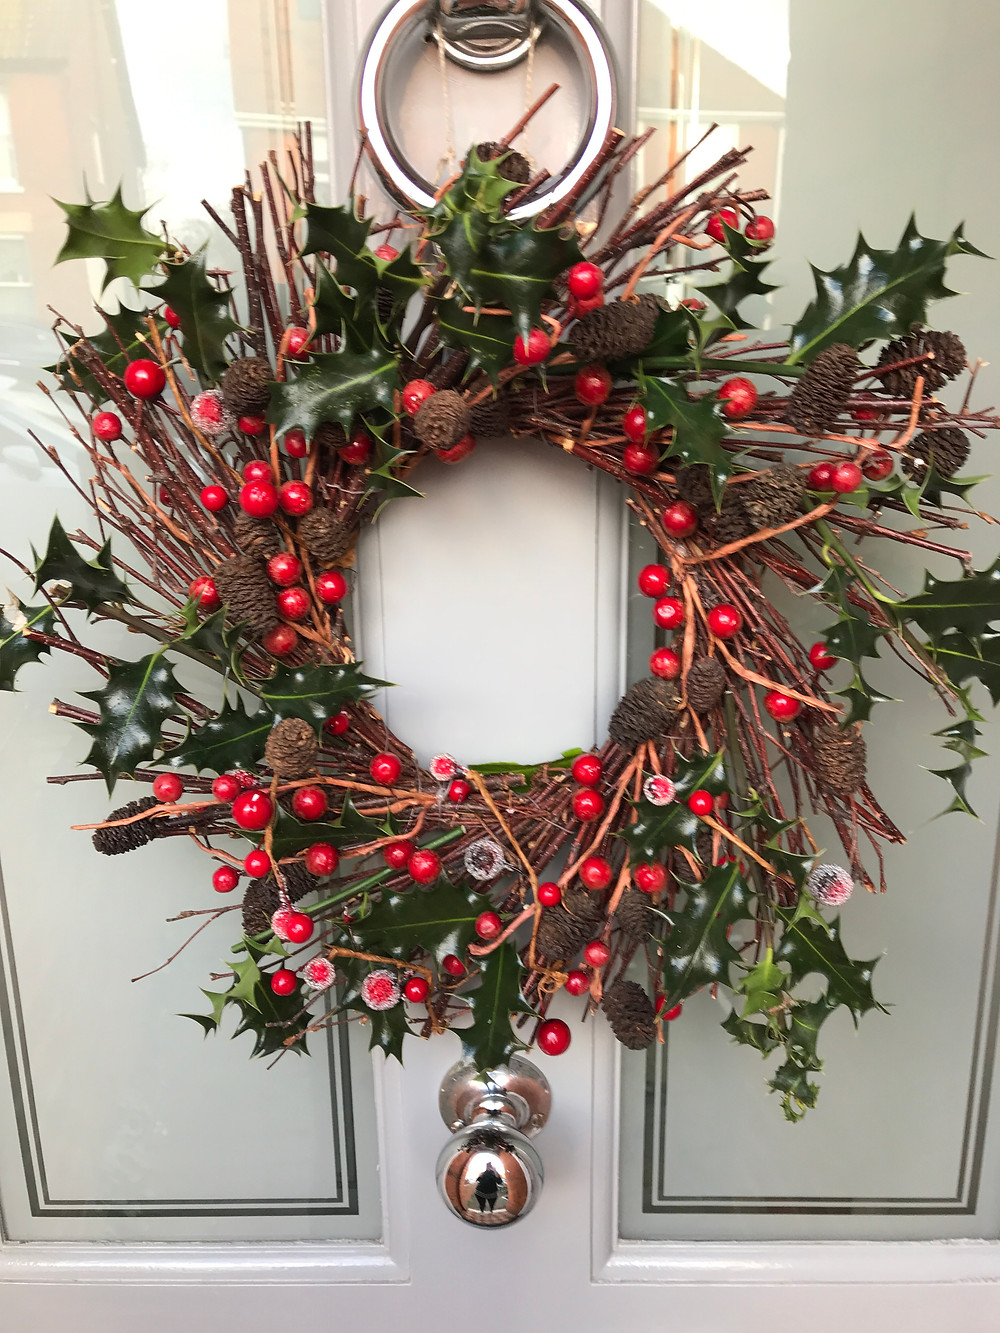 Natural Christmas wreath festive holly berries holidays